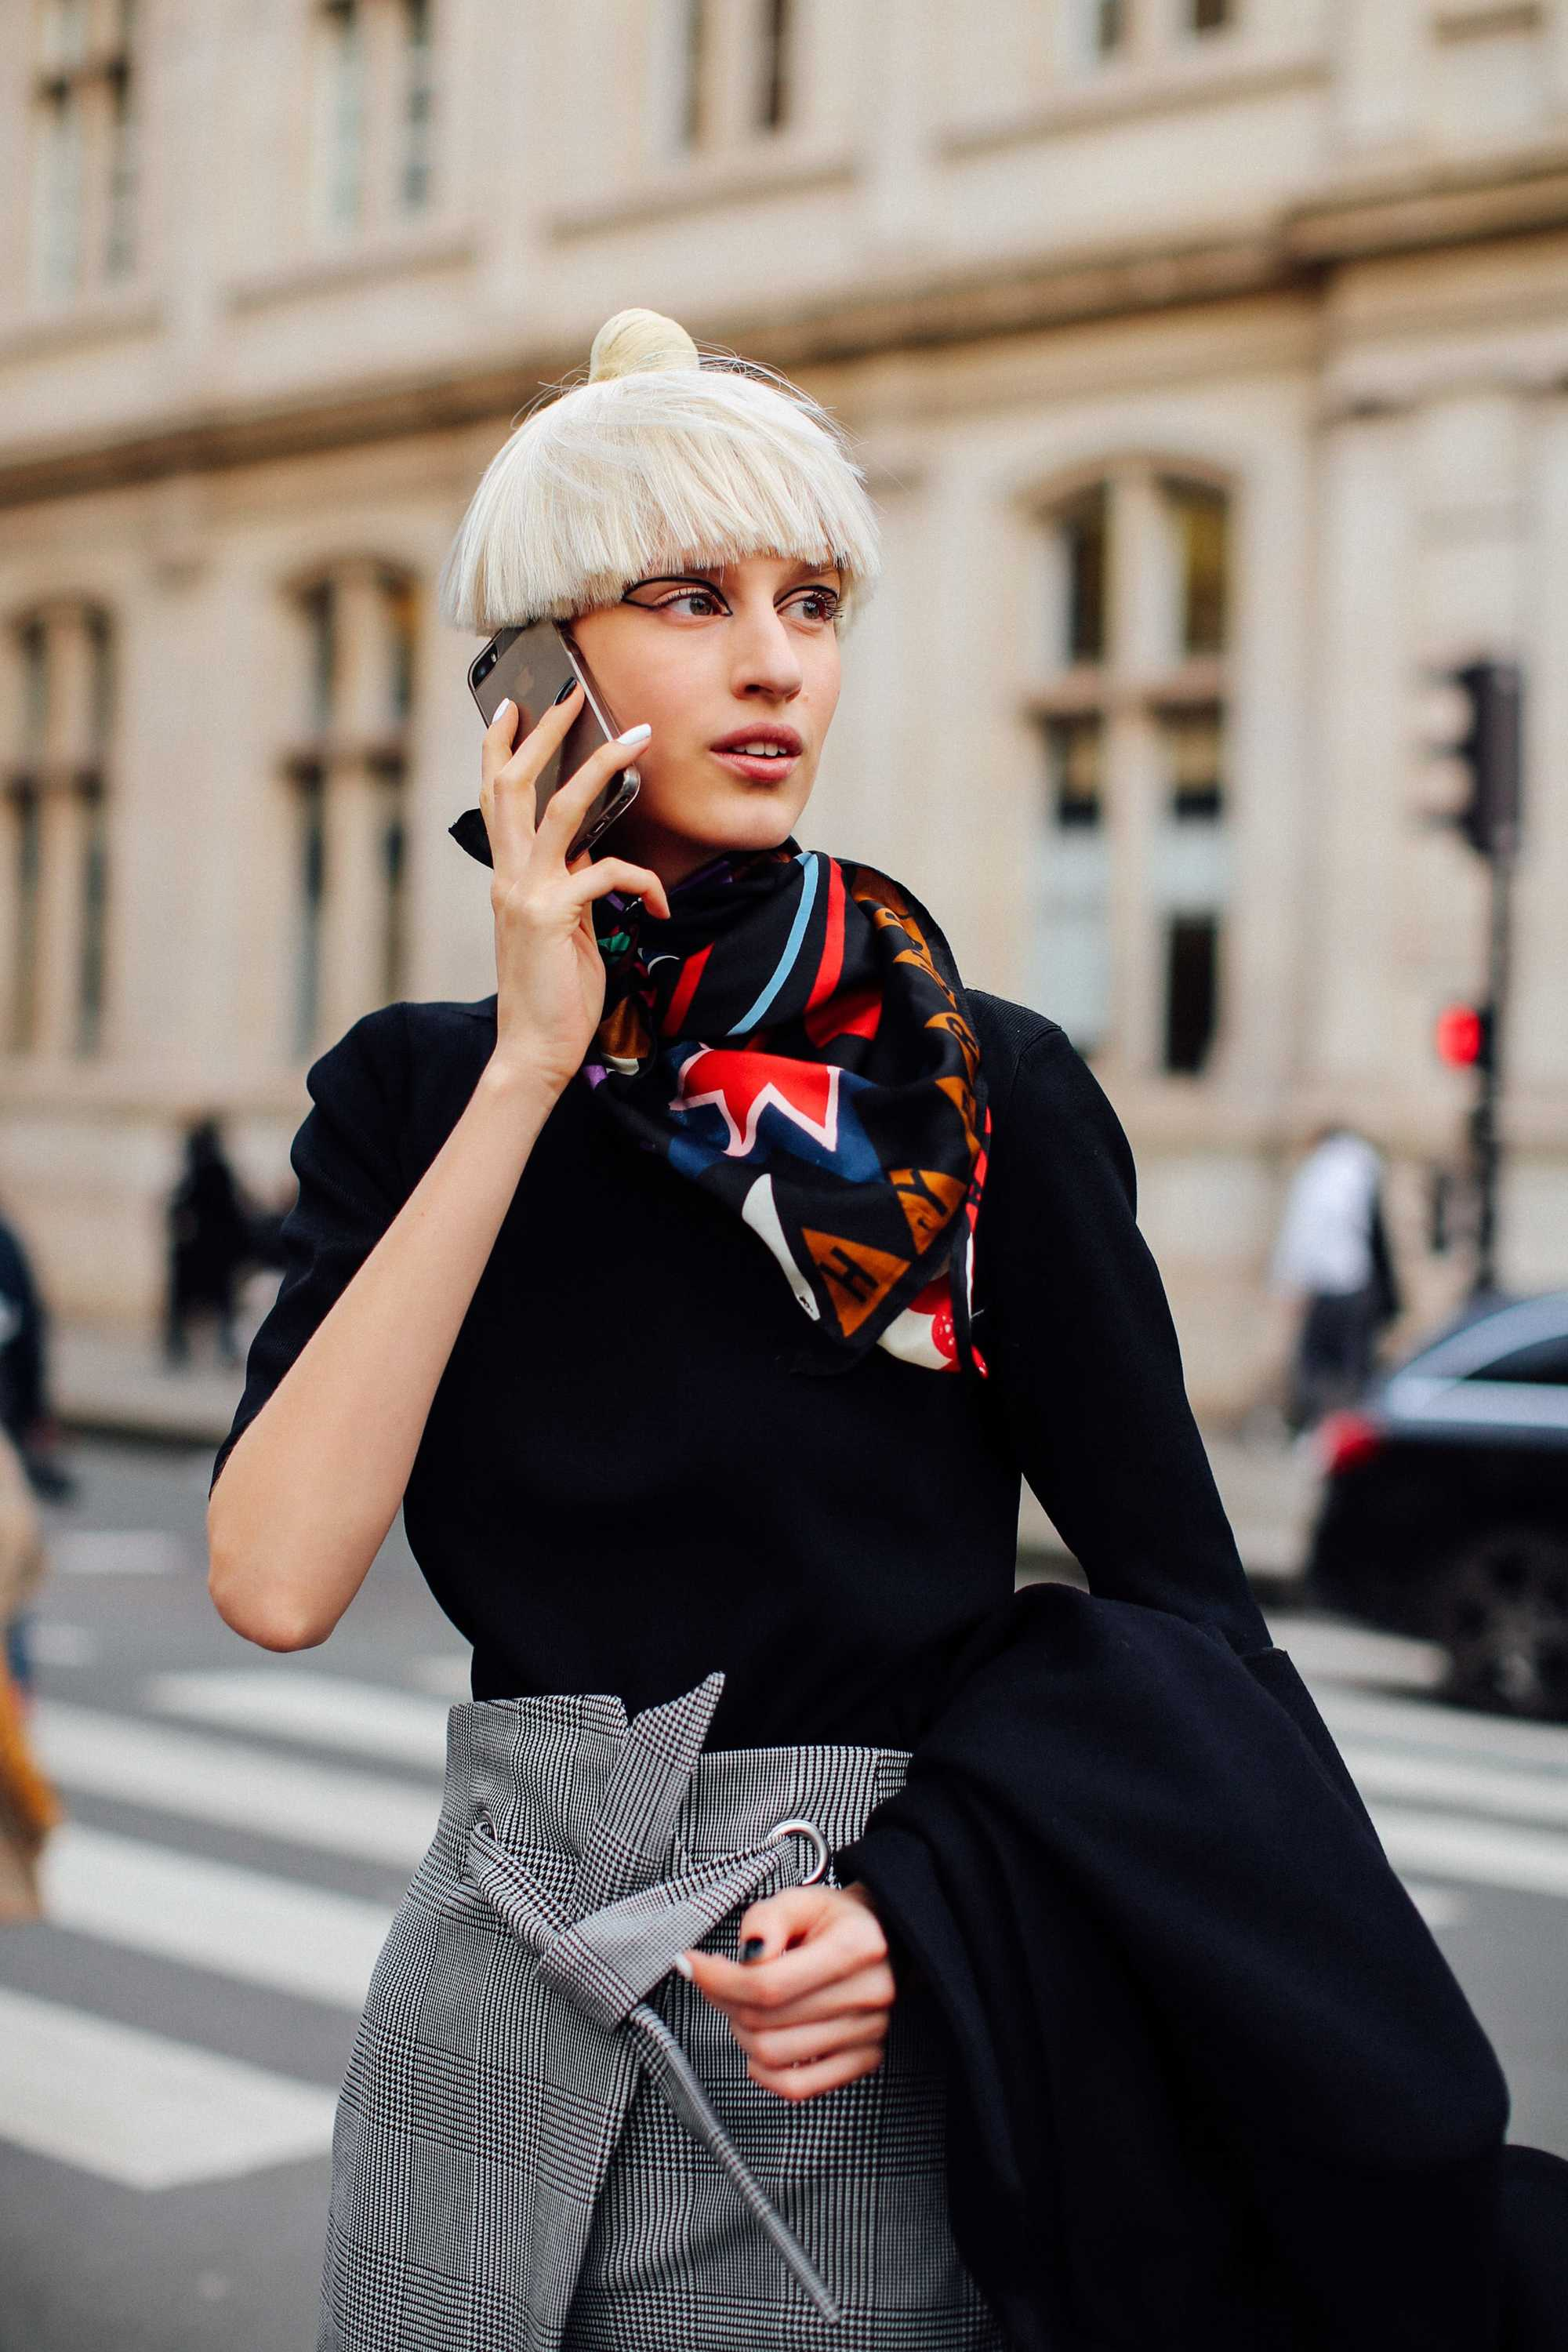 Girl with white blonde mushroom hair cut outside on the phone